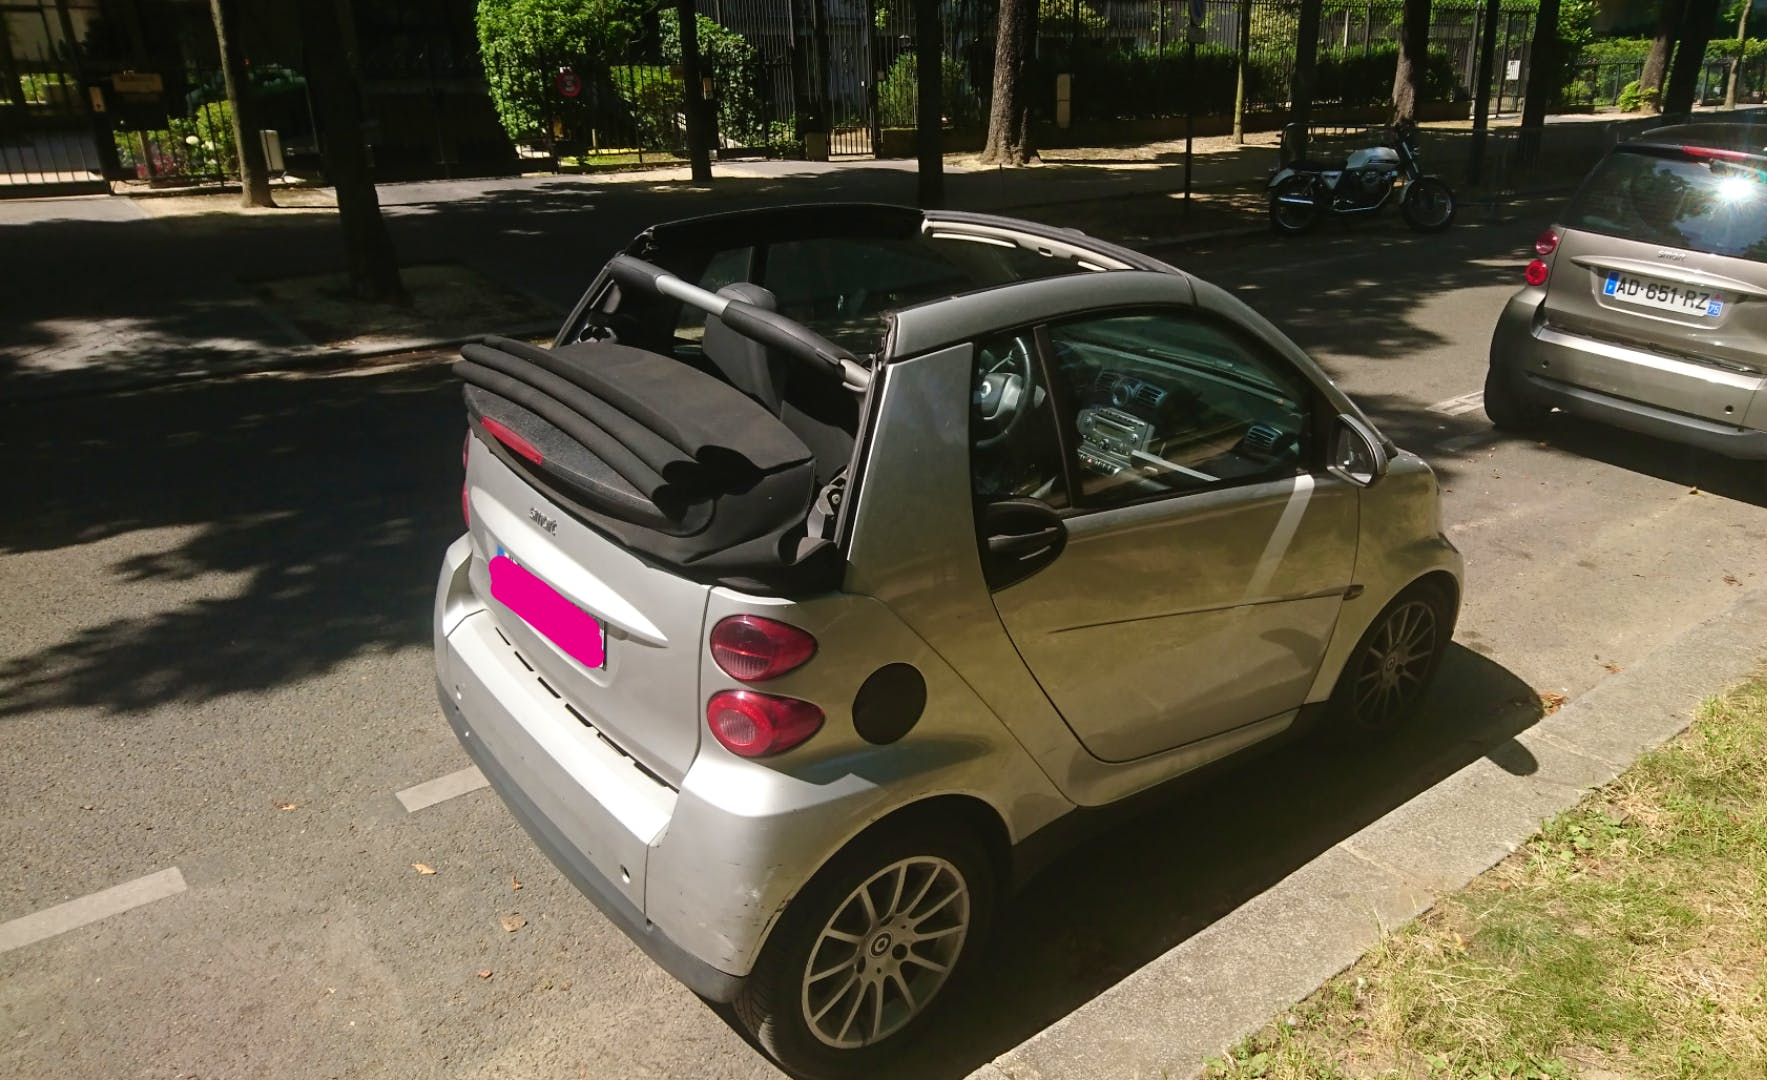 Smart Fortwo Cabriolet 71ch Passion (clim, Jack,...) PARIS 13 - SAINT JACQUES #aq avec Lecteur CD